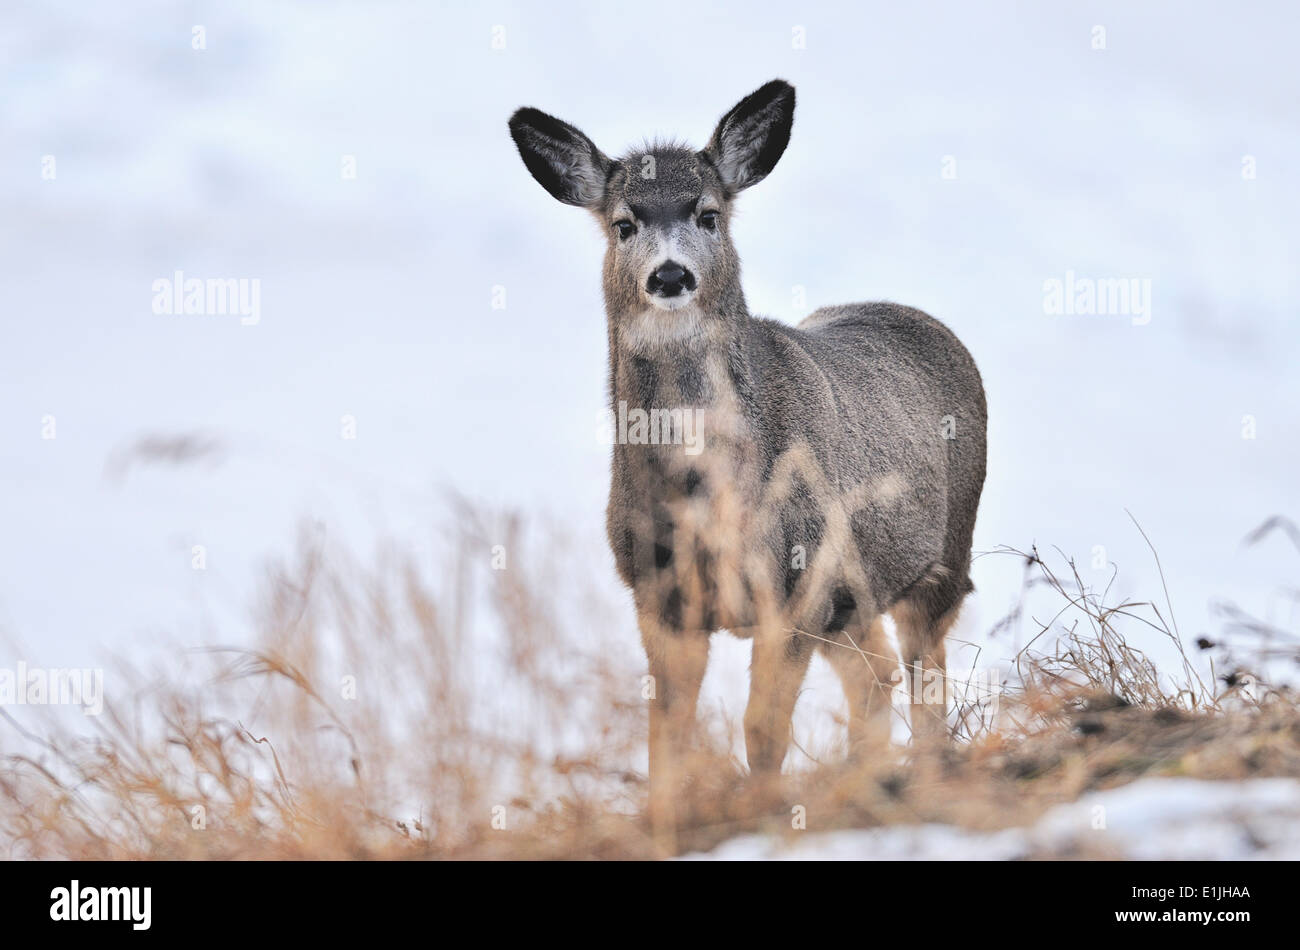 A portrait image of a young mule deer in his winter habitat - Stock Image